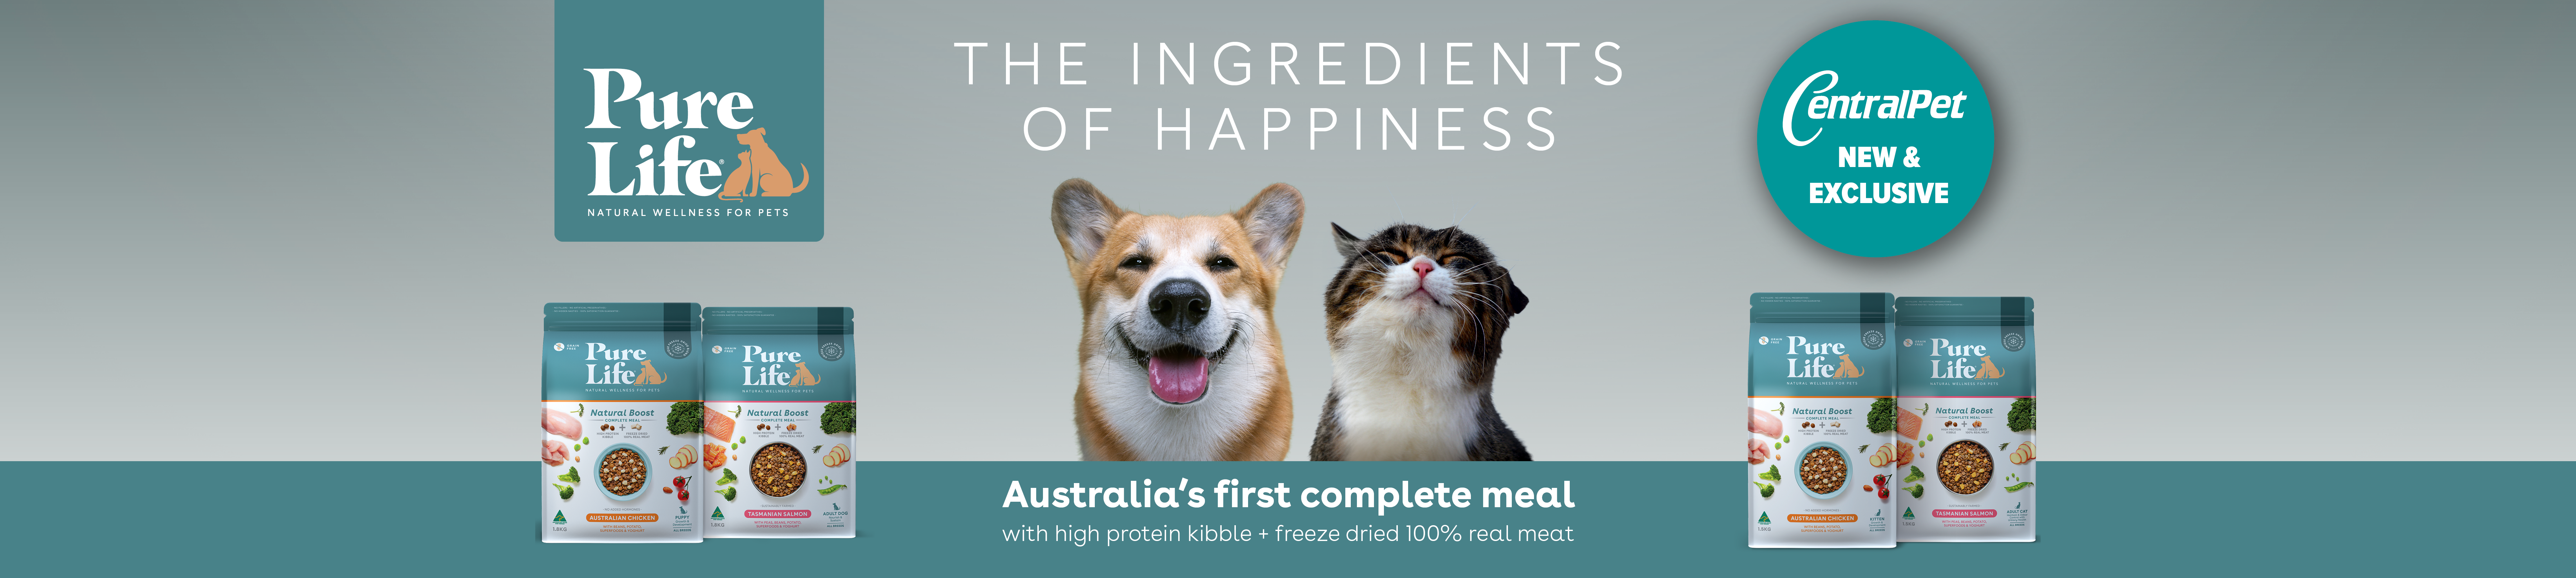 Pure Life - The Ingredientof Happinesss of